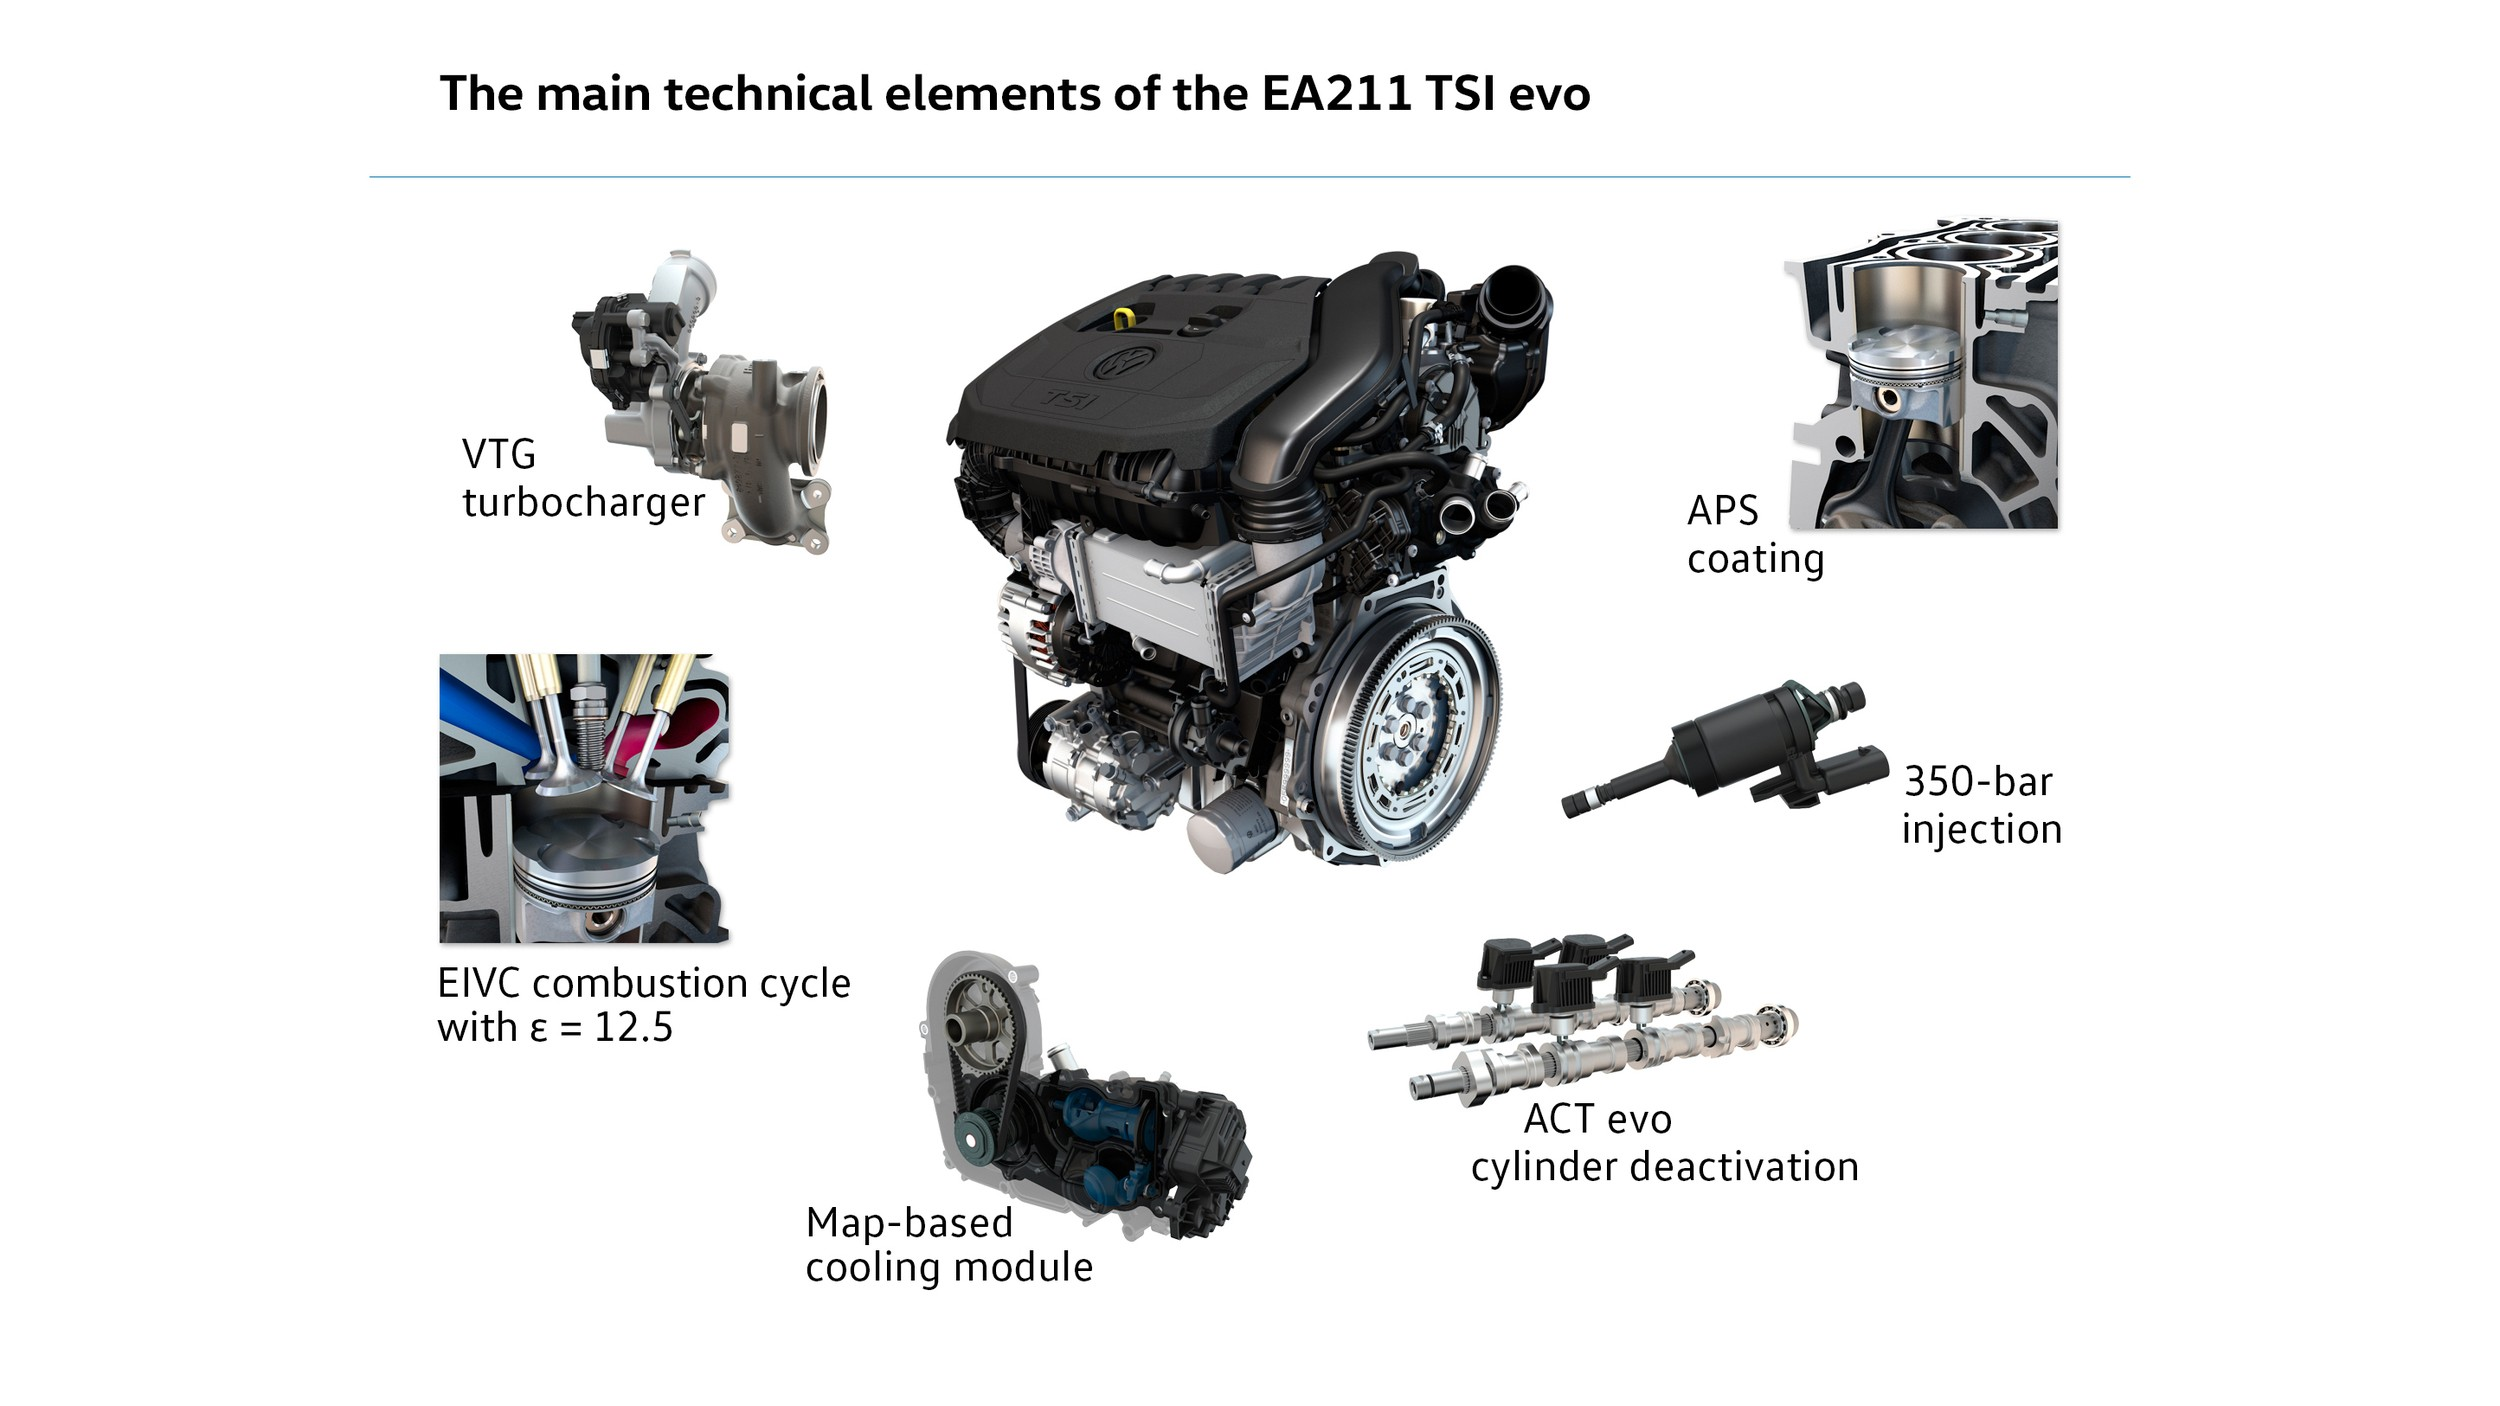 Volkswagen Announces New 1 5 Liter Tsi Evo Engine With